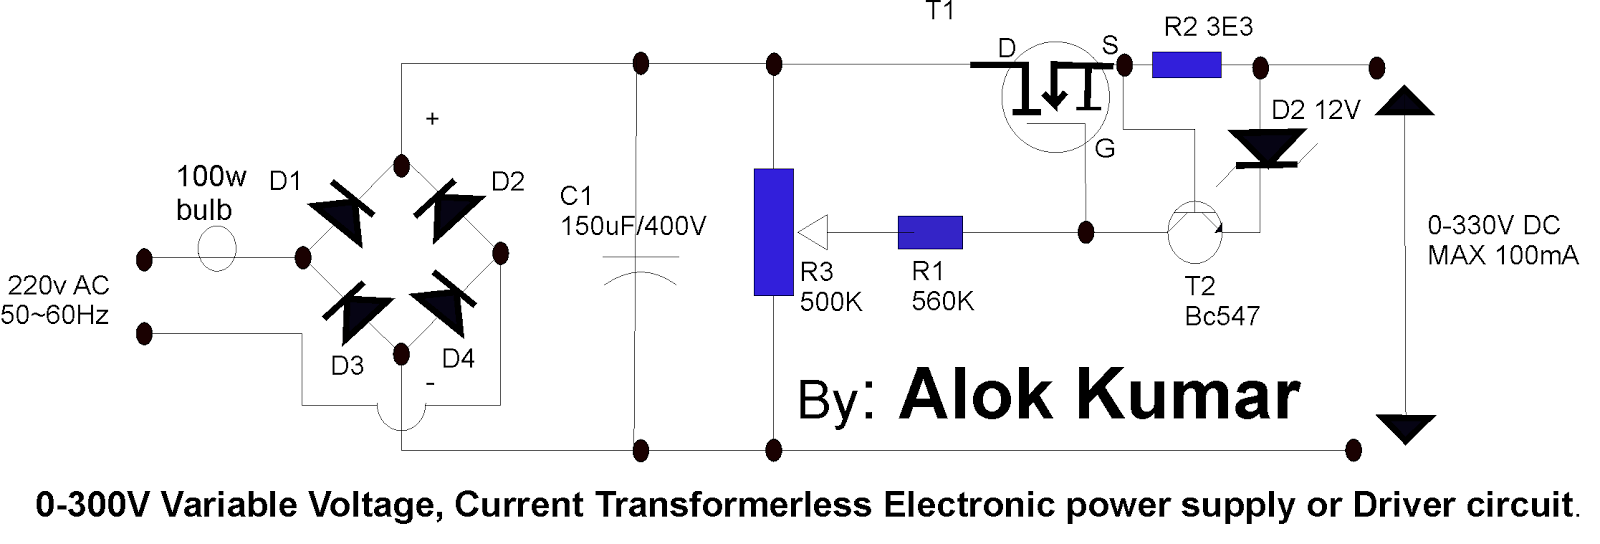 medium resolution of electronic circuits transformerless power supply led drivers battery chargers solar circuits